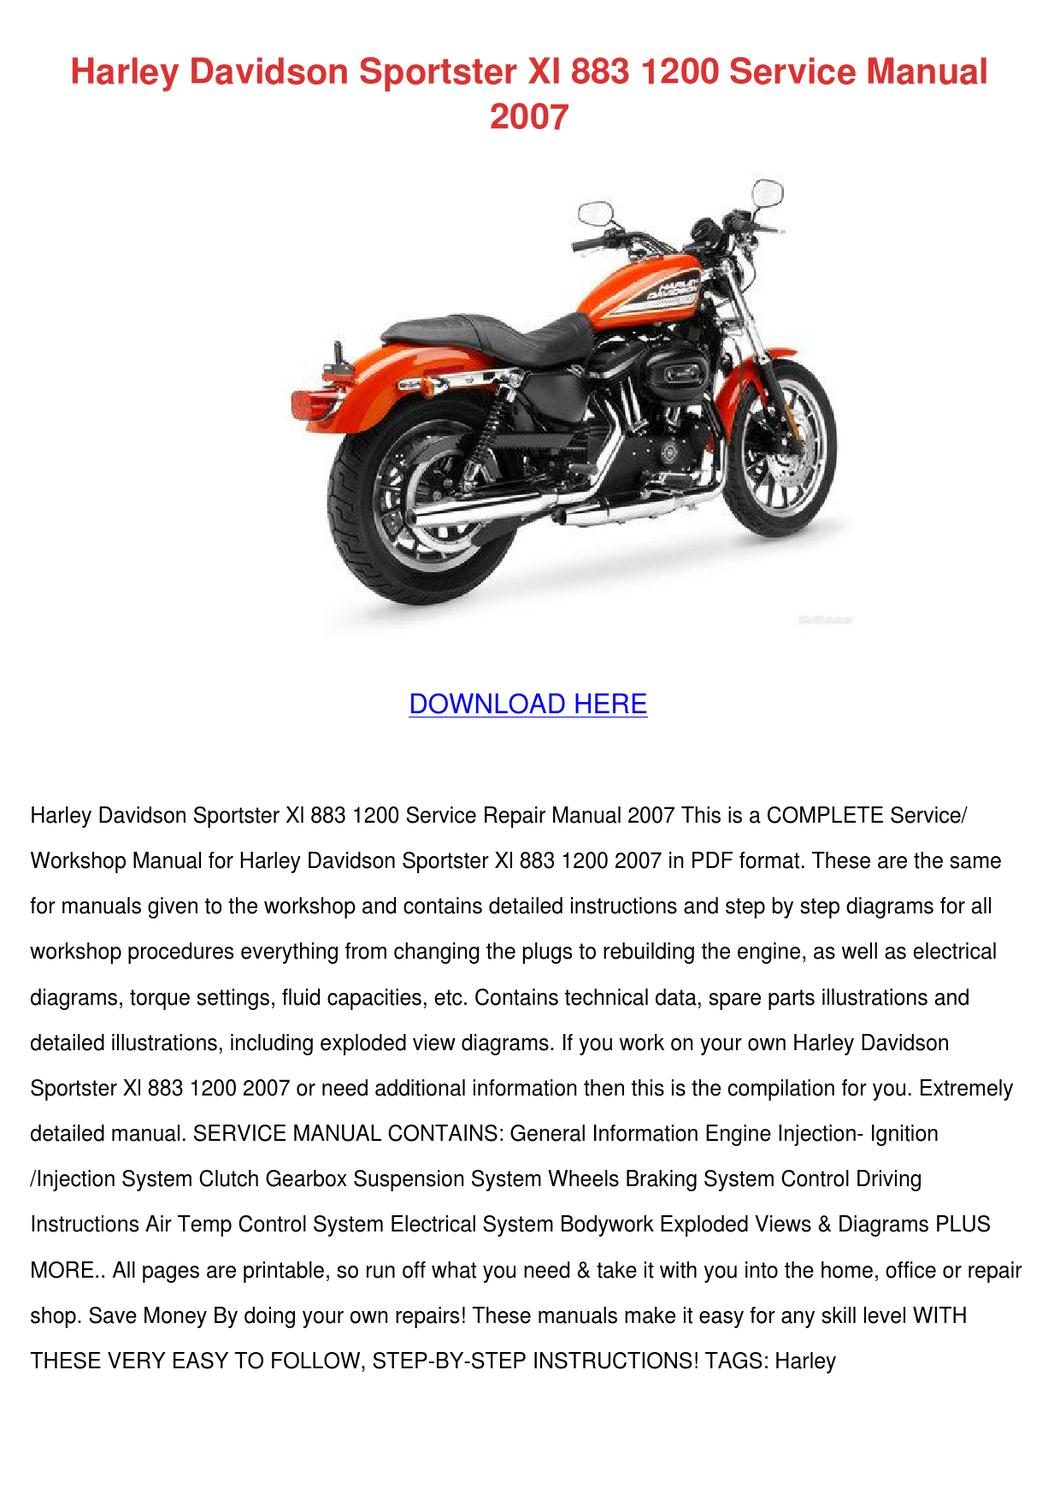 Shovelheads Manuals And Diagrams Sportsters Manuals And Diagrams